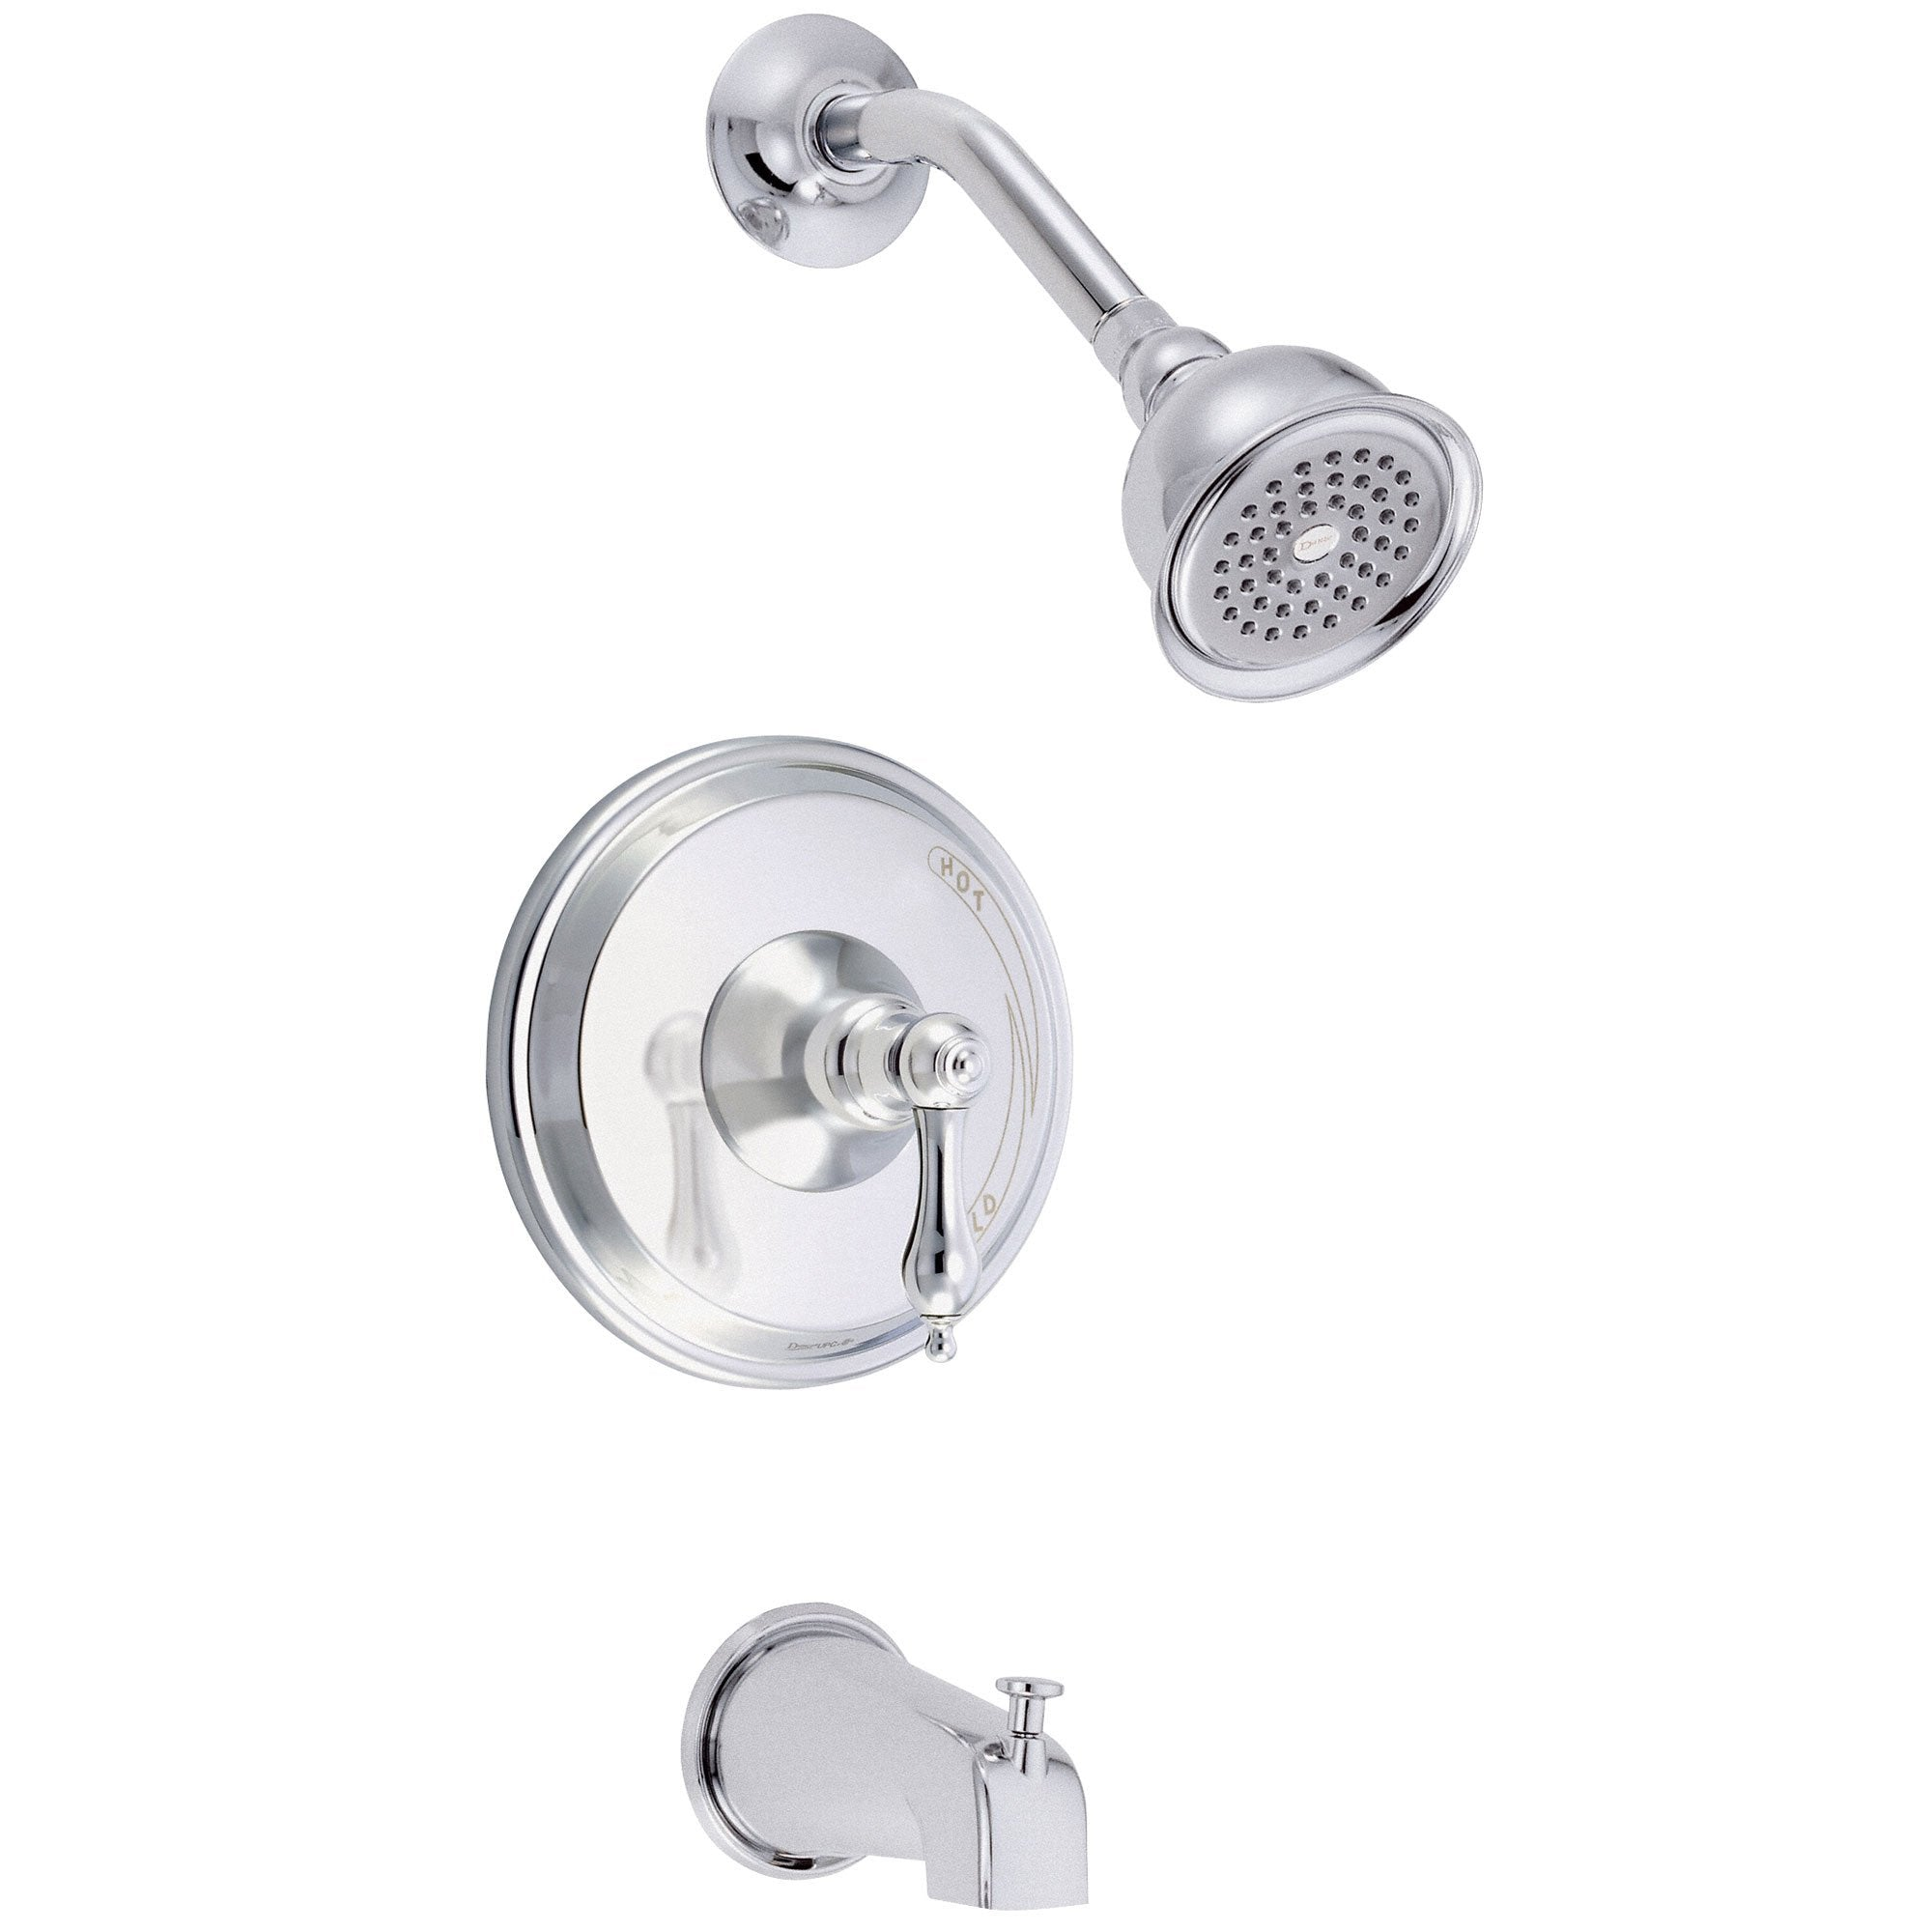 Danze Fairmont Chrome Single Lever Handle Tub and Shower Combination Faucet INCLUDES Rough-in Valve